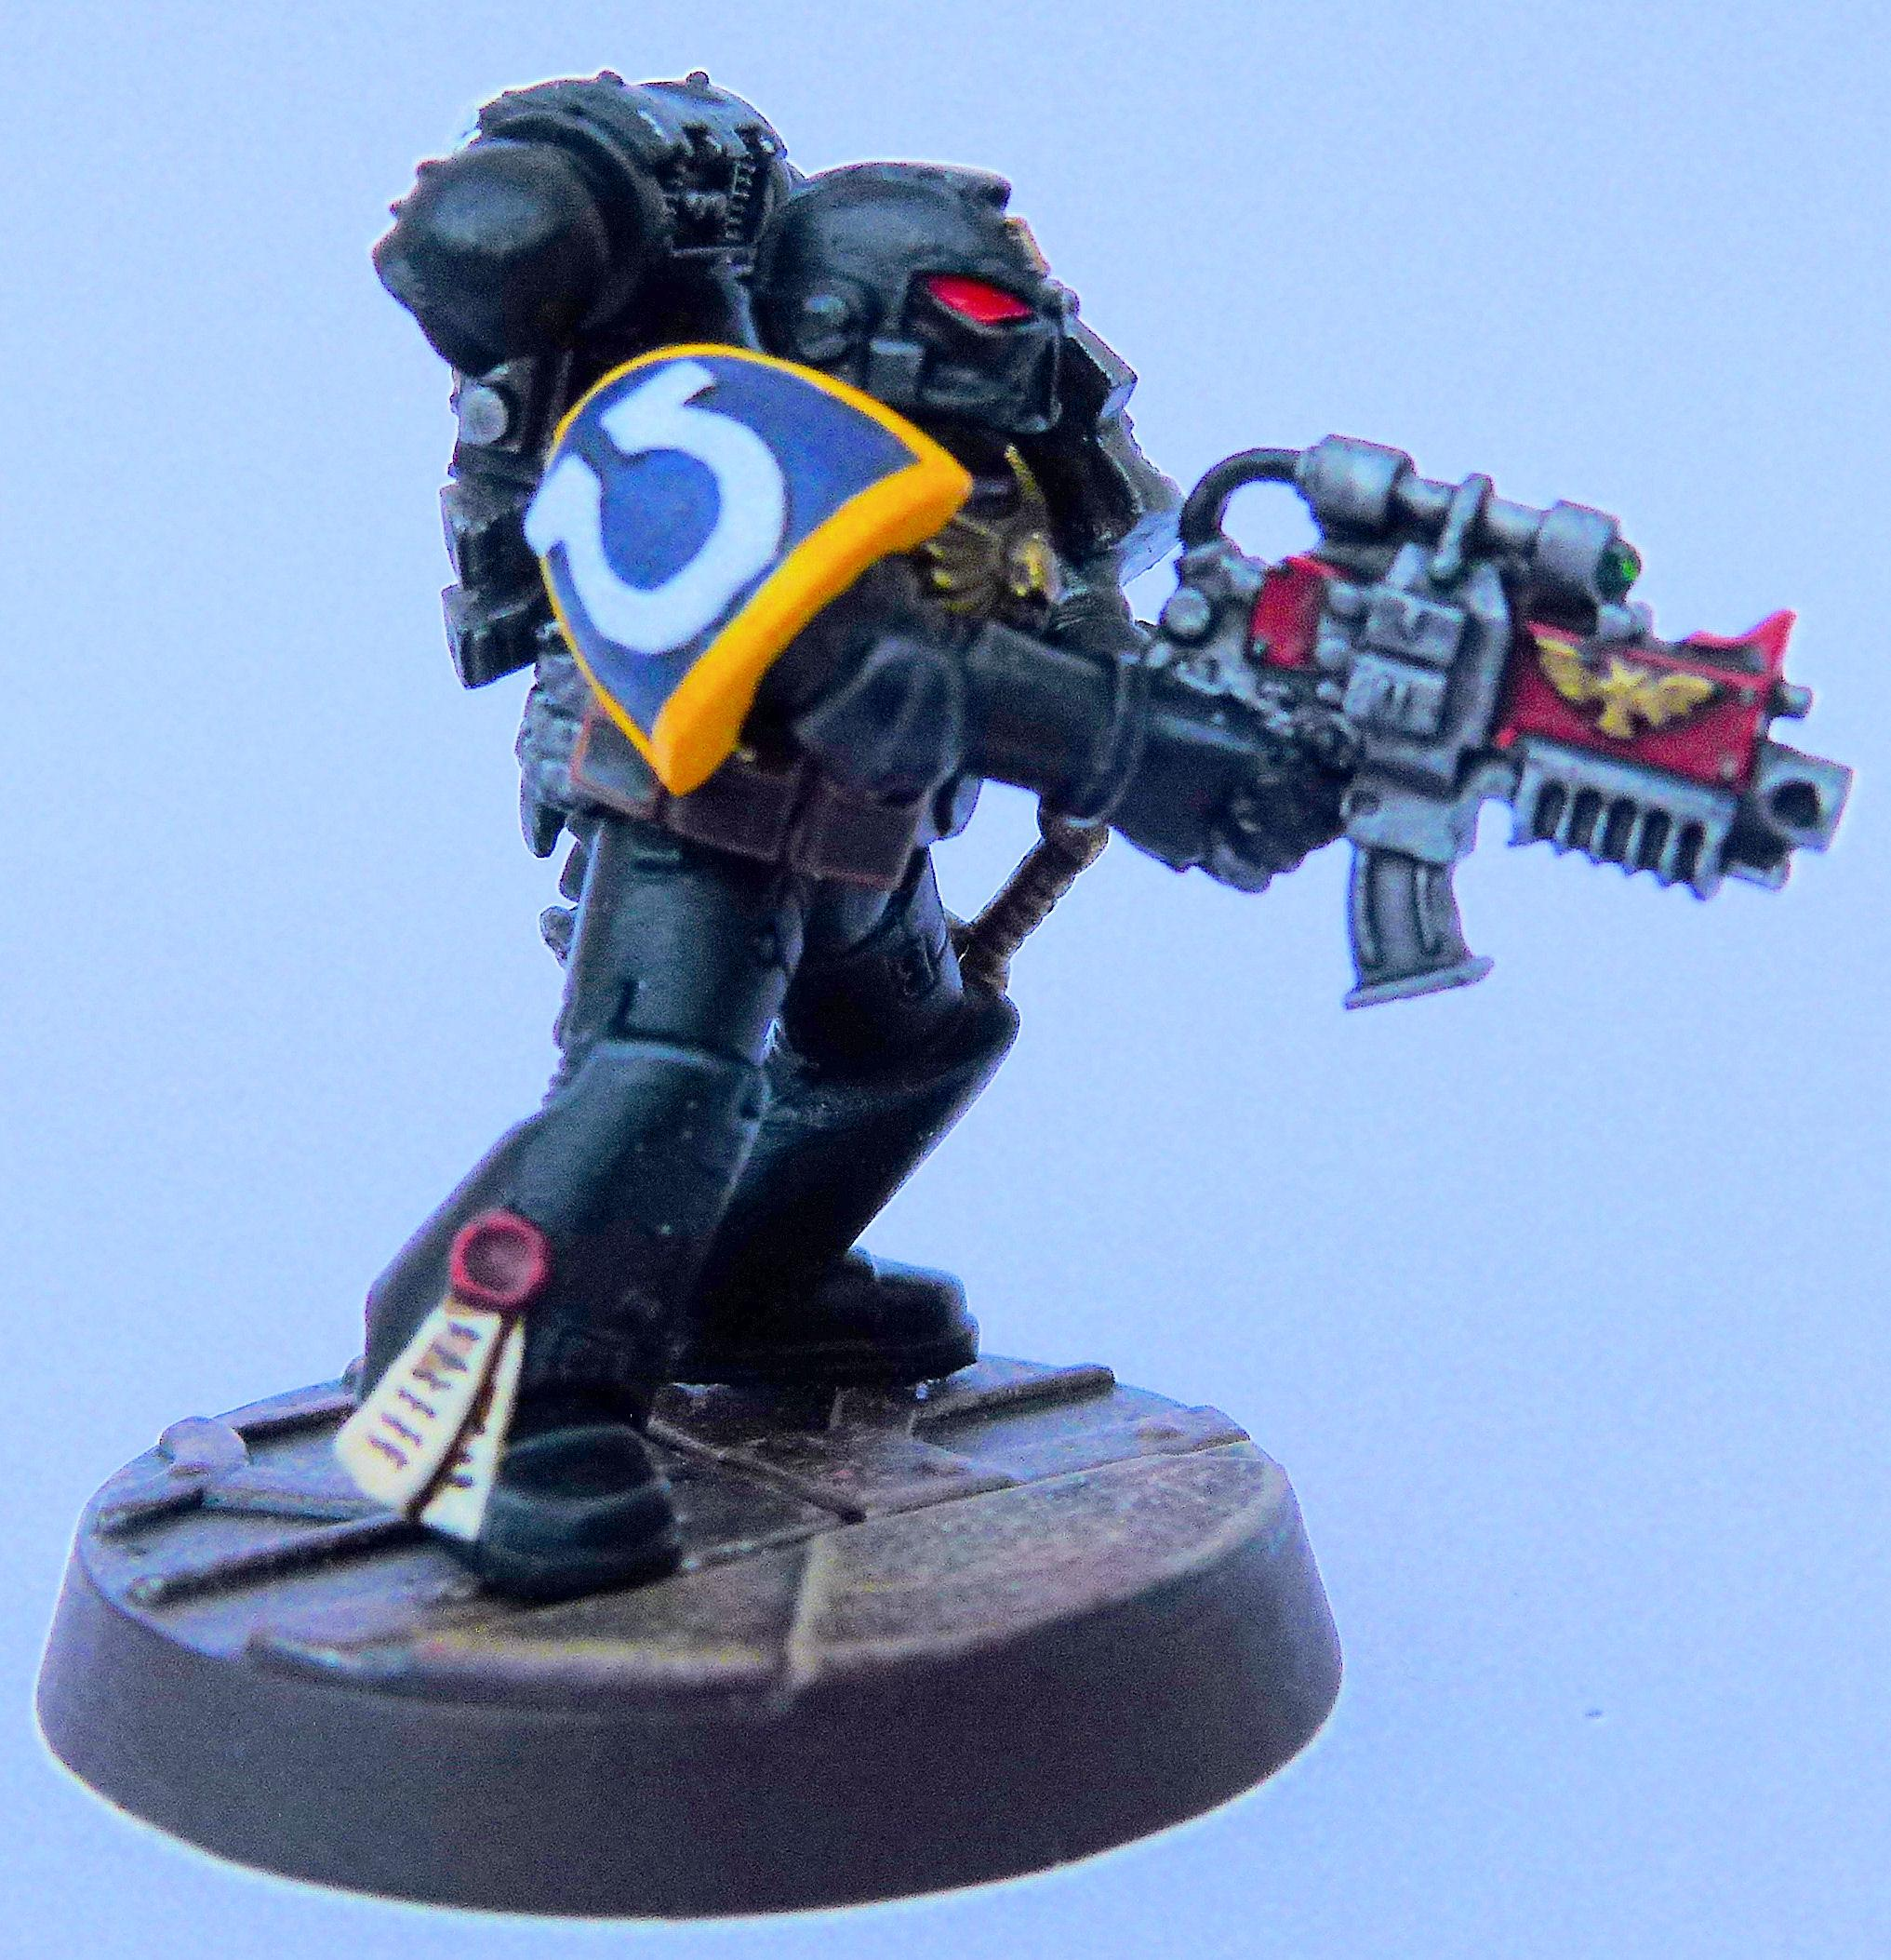 Ultramarine Deathwatch 3 Right Side